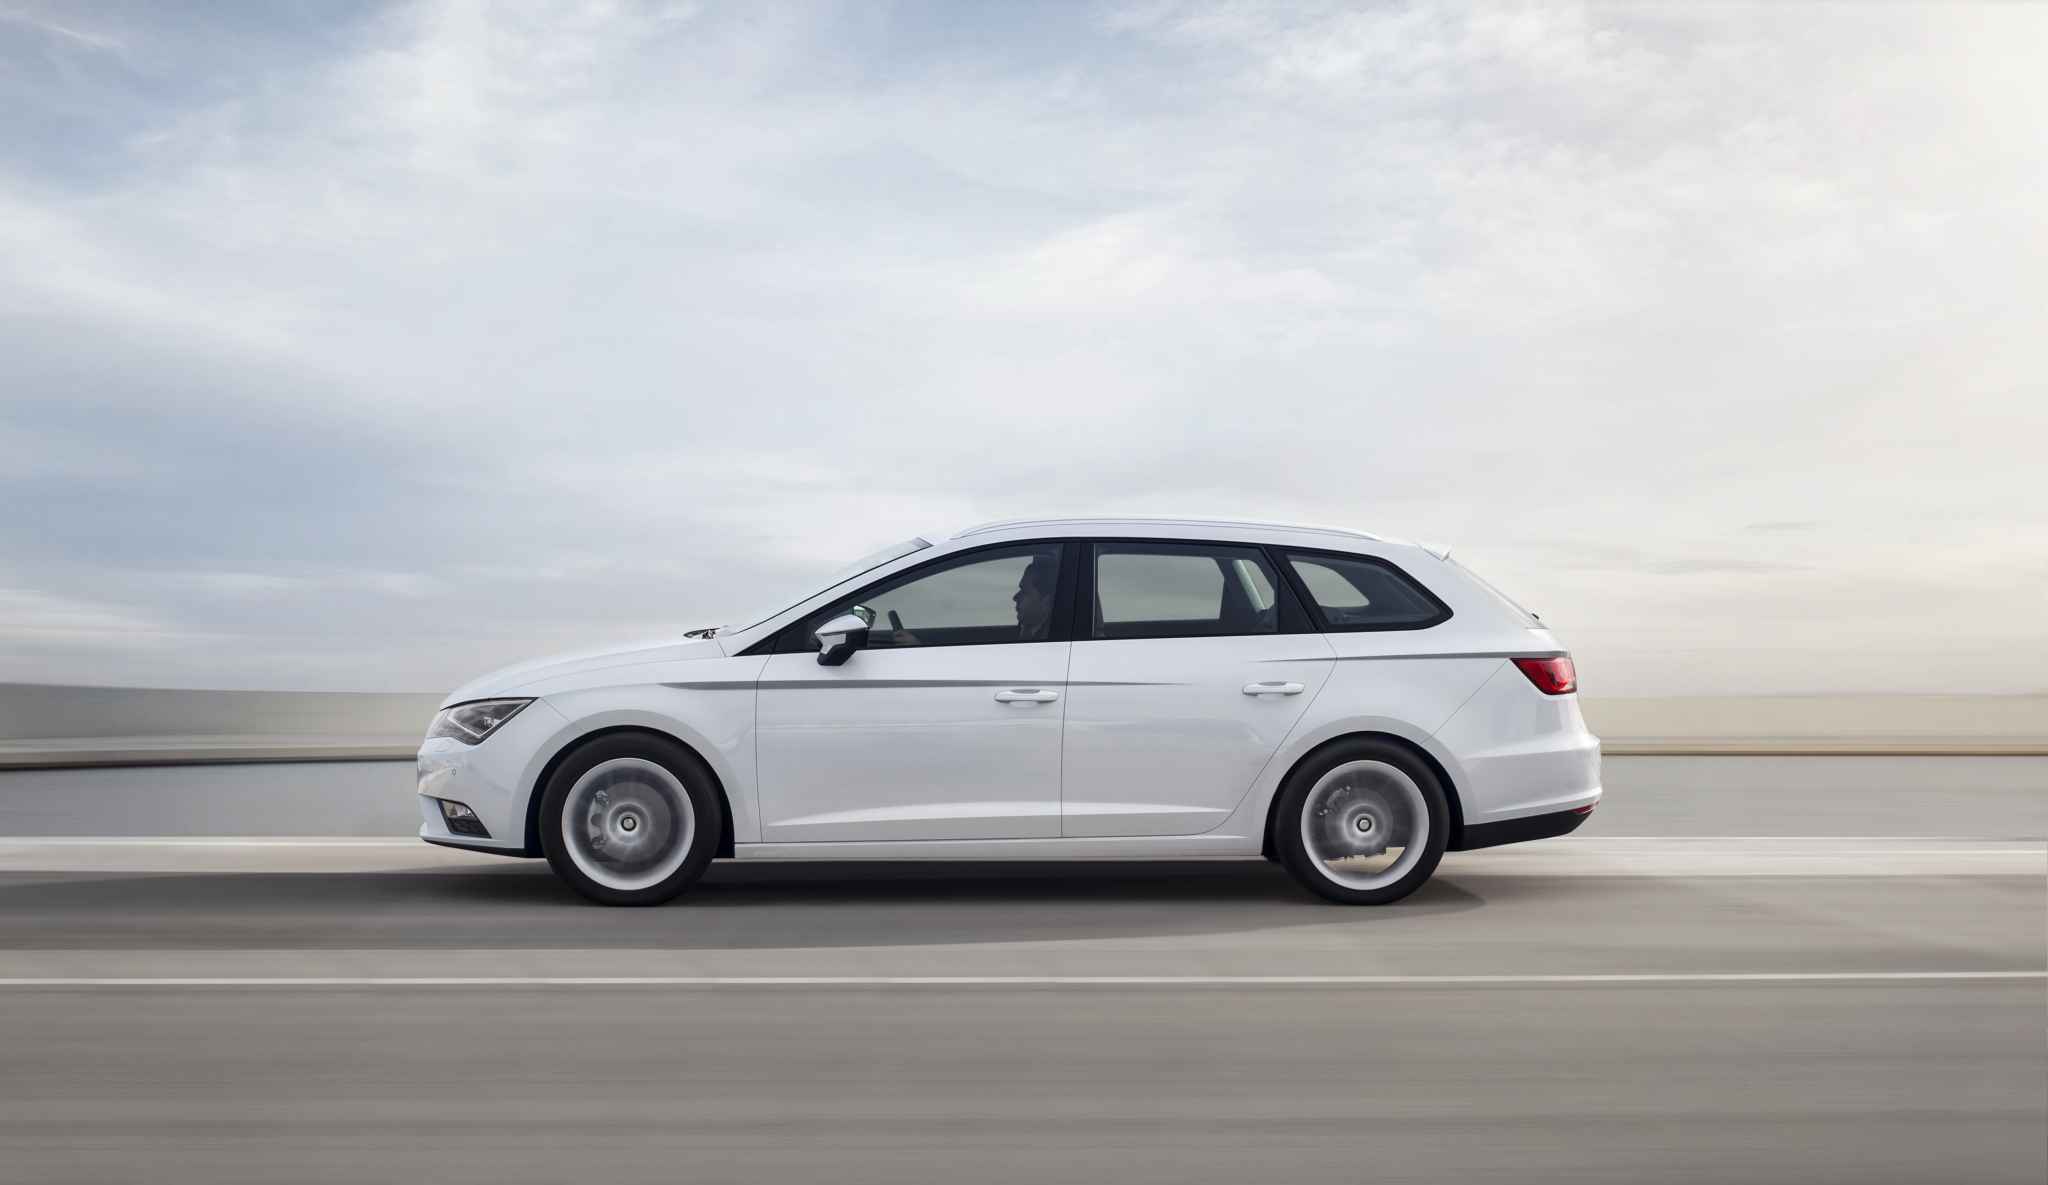 Seat León ST lateral